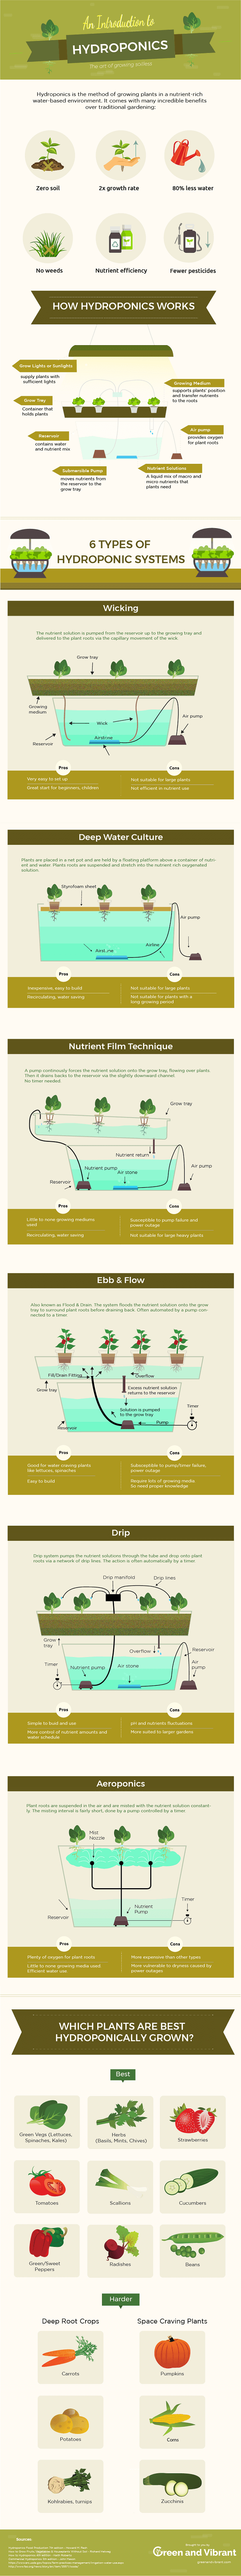 Introduction to hydroponics (graphic)